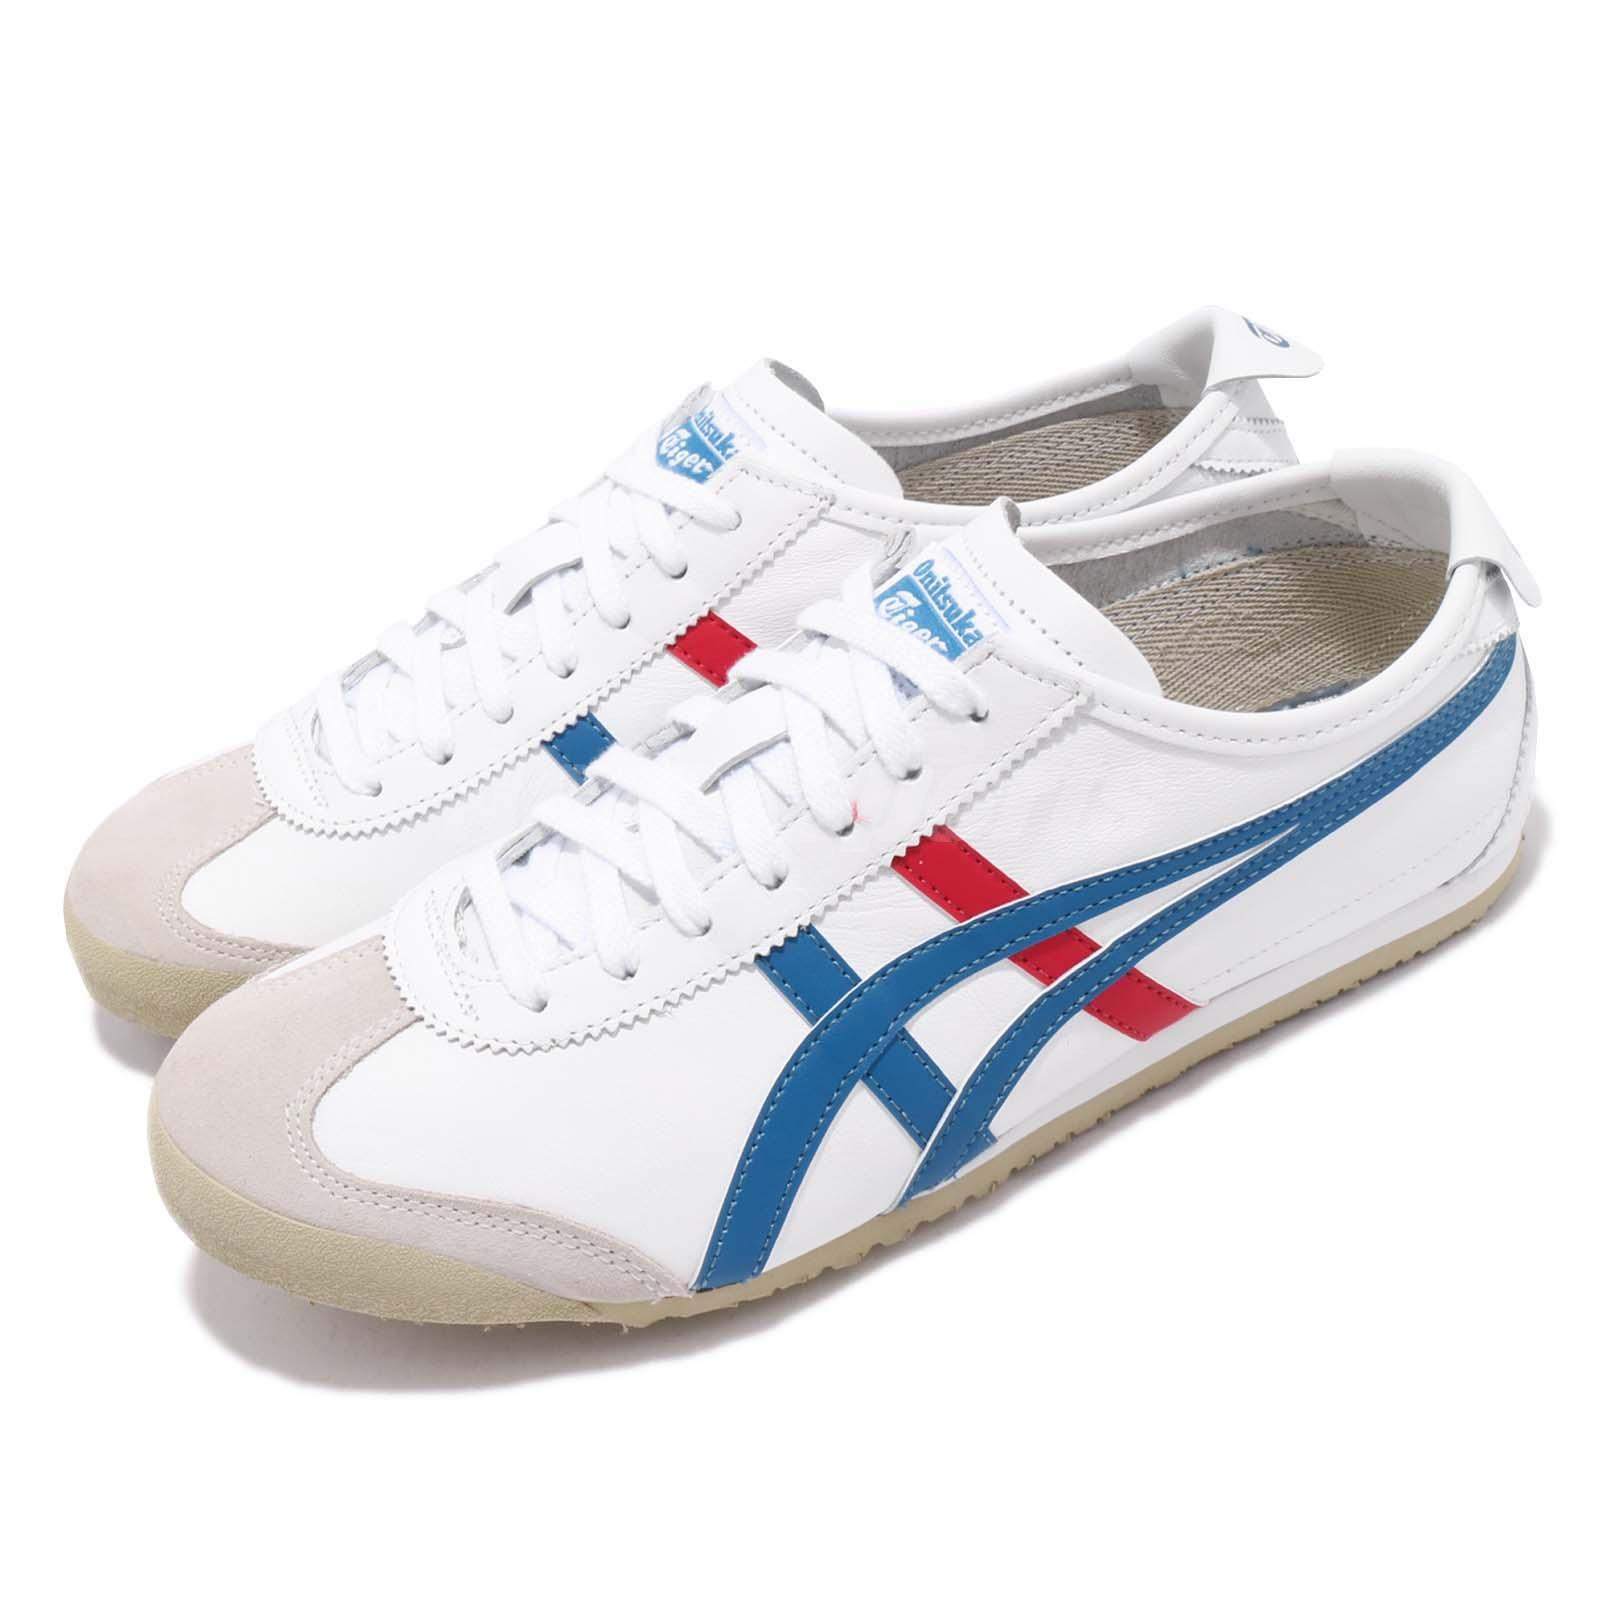 wholesale dealer caed4 37414 Details about Asics Onitsuka Tiger Mexico 66 OT Men Women Shoes Sneakers  DL408-0146